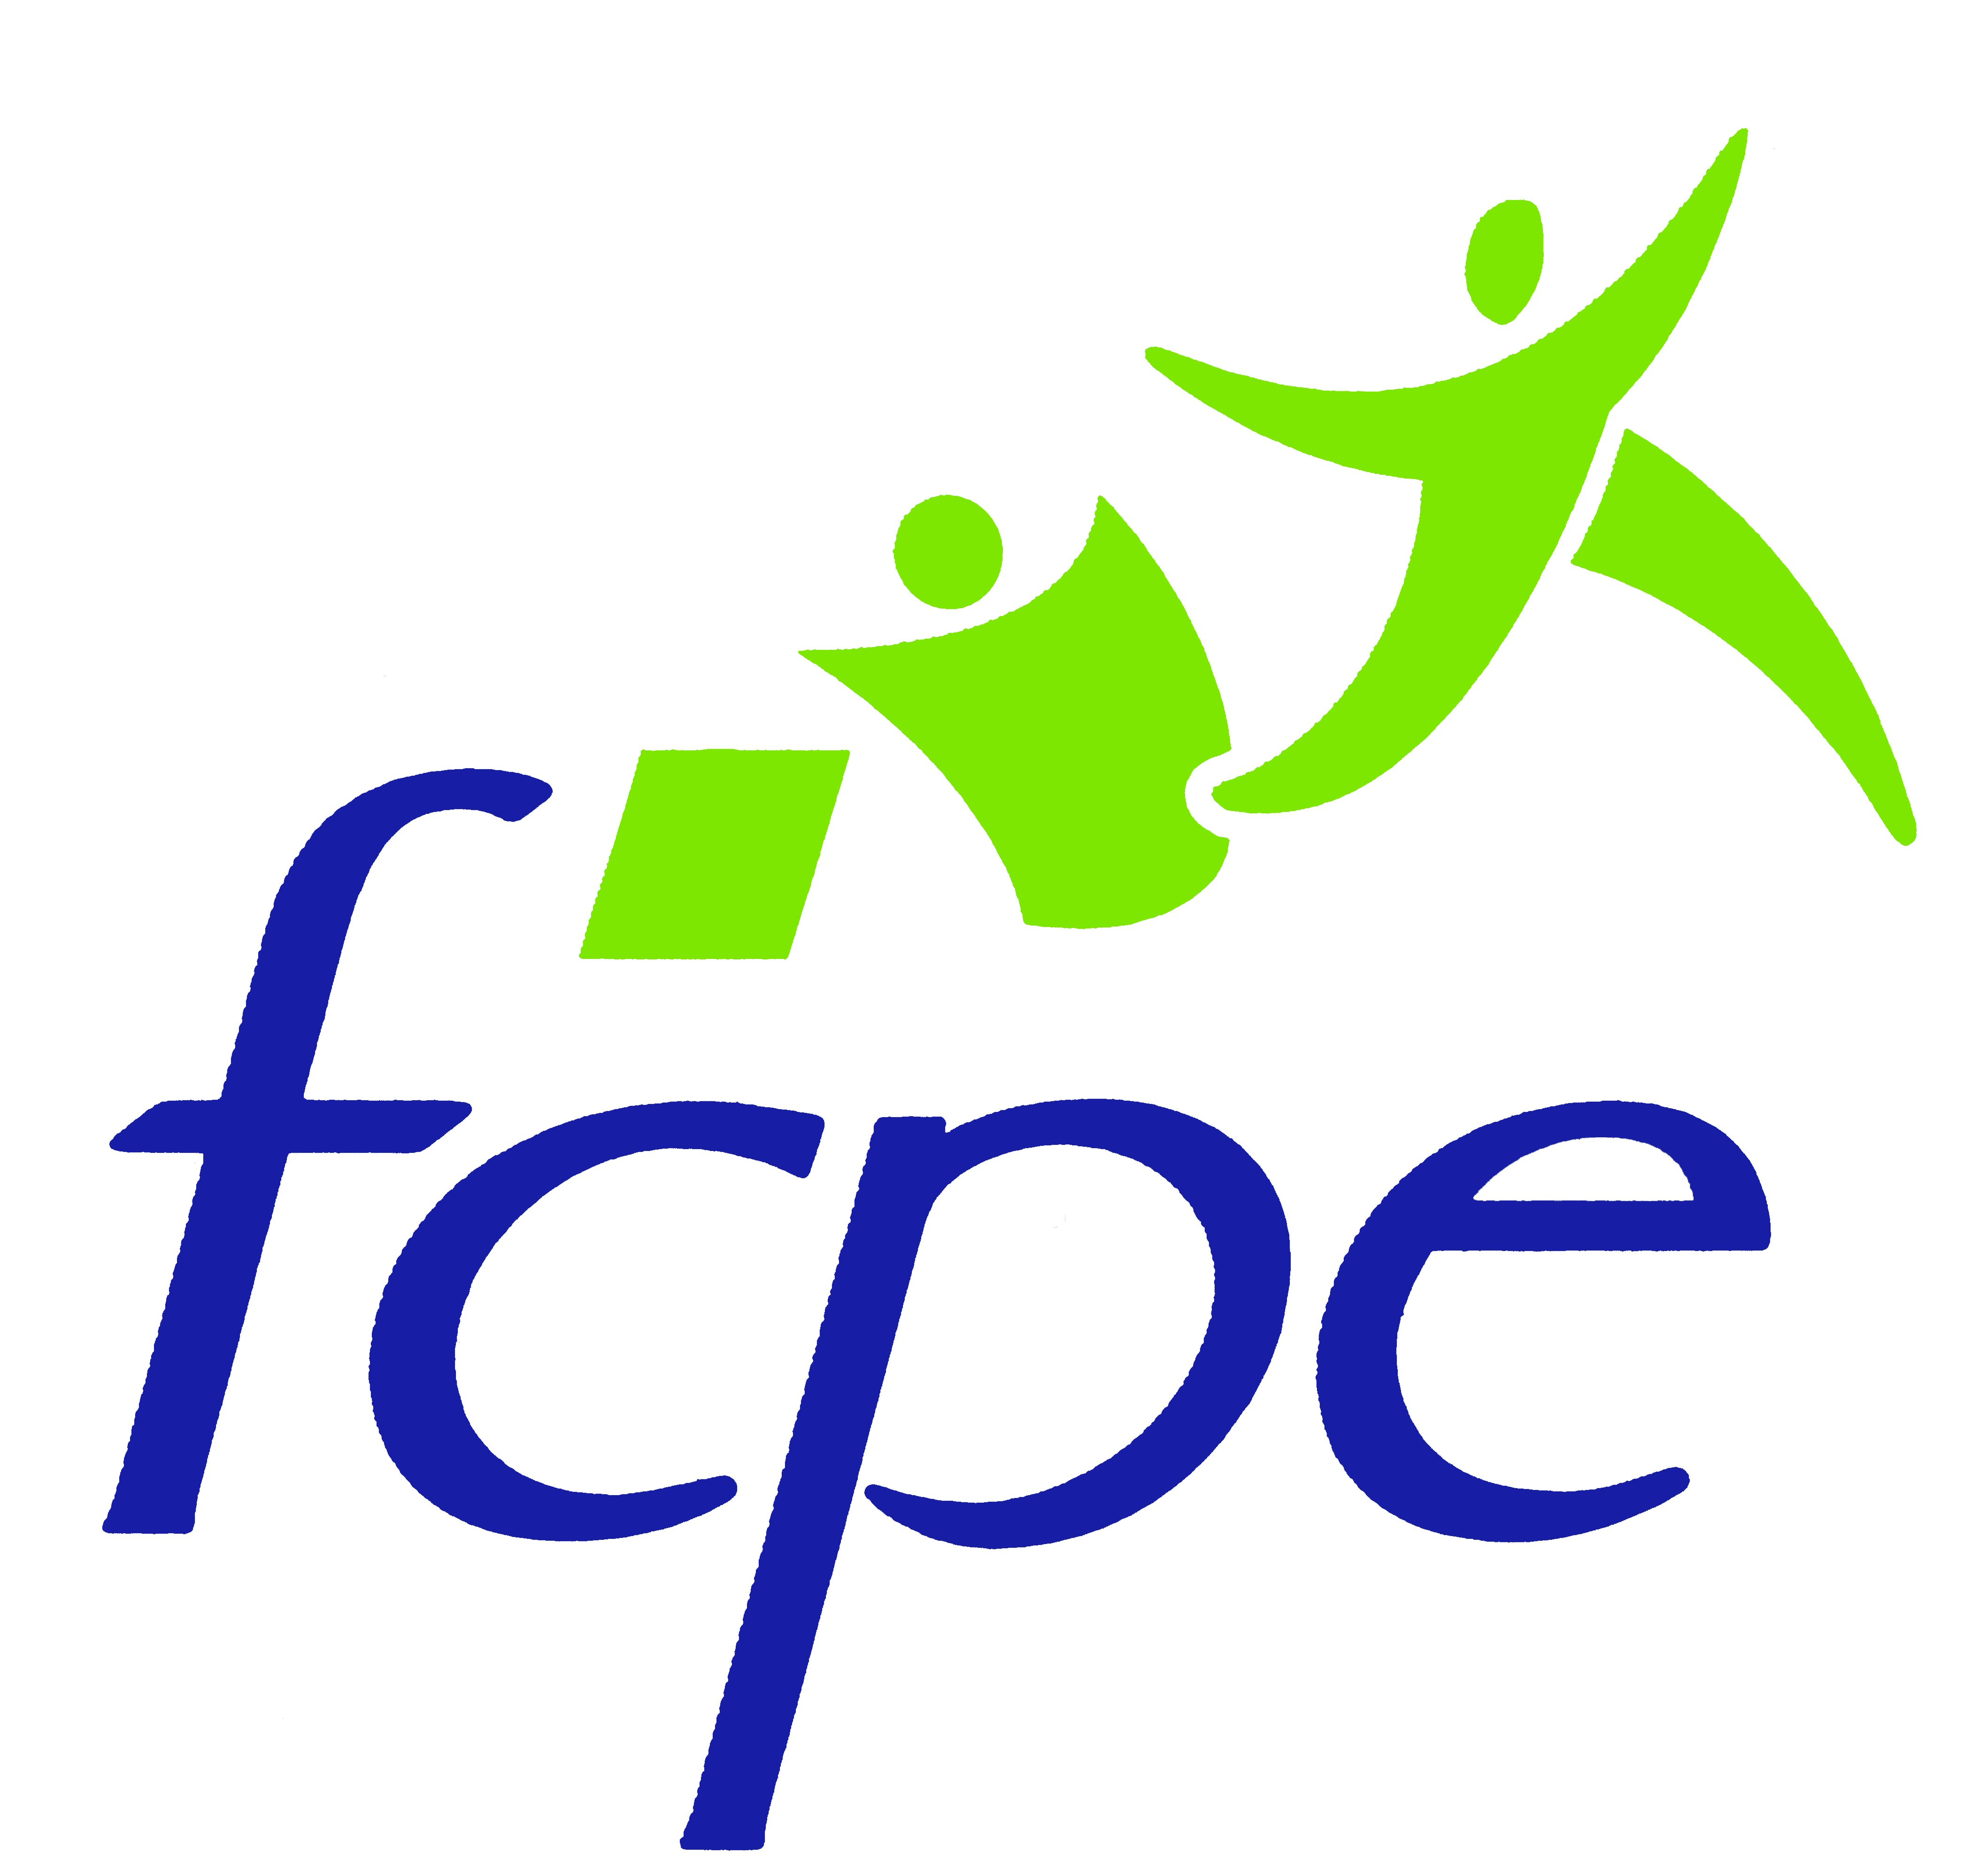 FCPE Nationale